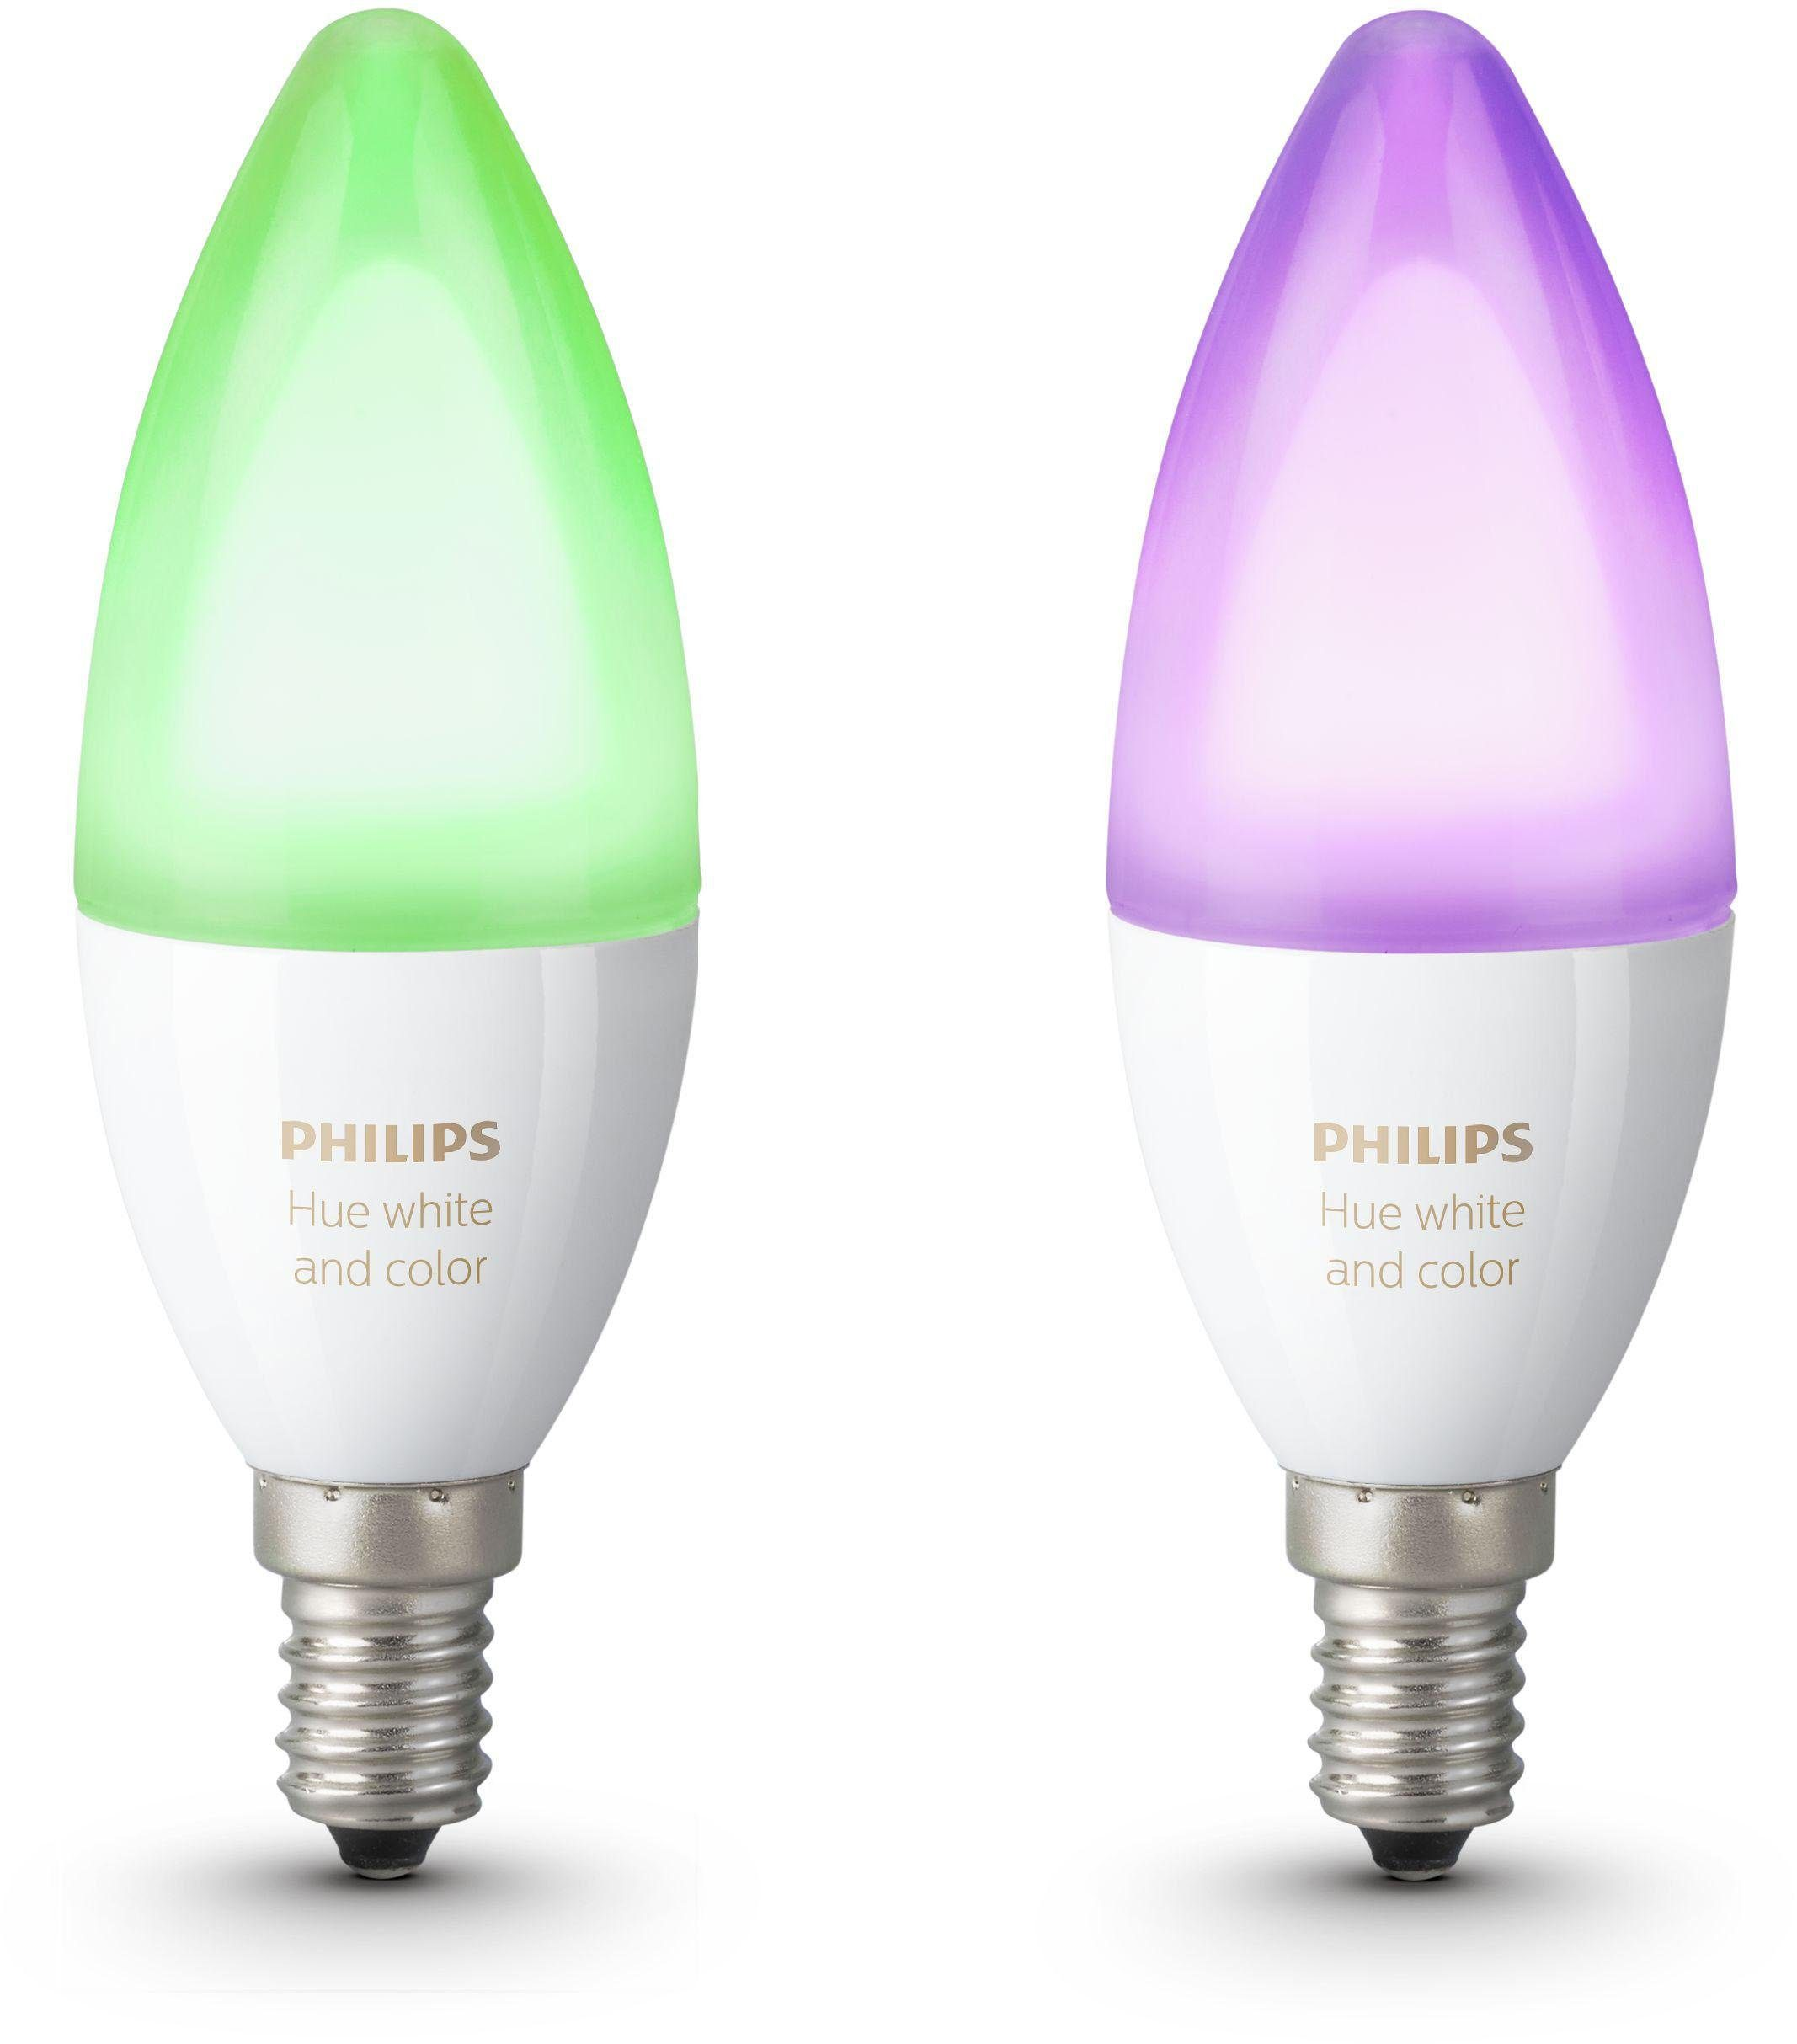 Philips Hue White & Color Ambiance E14 Doppelpack - smartes LED-Lichtsystem mit App-Steuerung